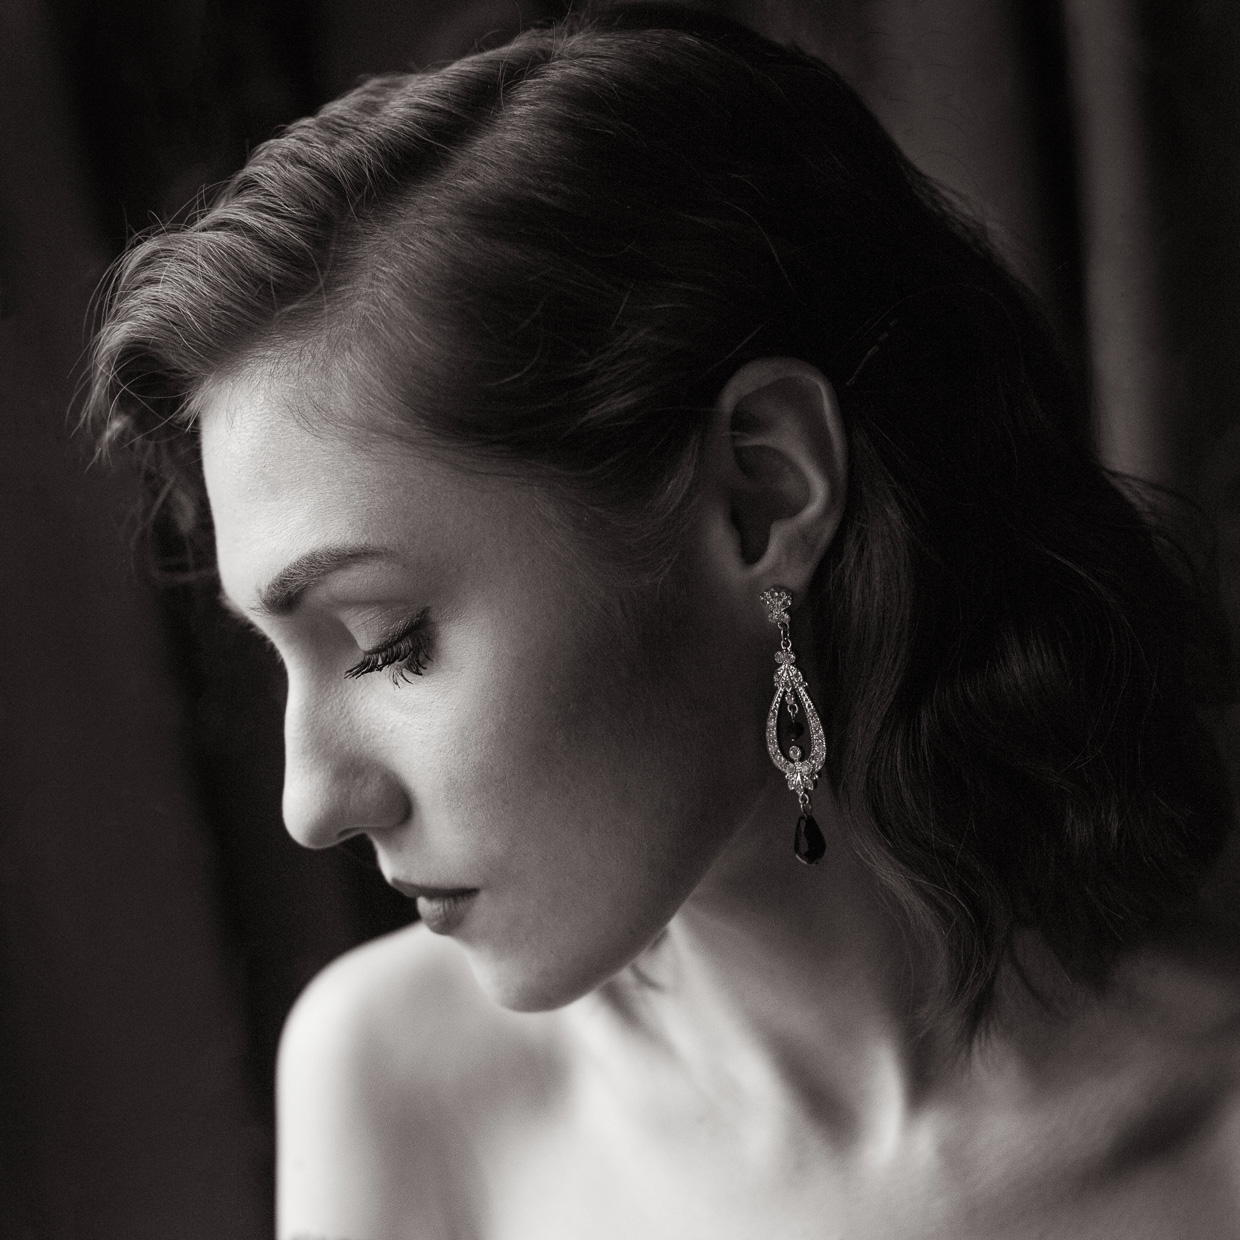 Portrait of Hannah Grace Taylor and her elegant earrings